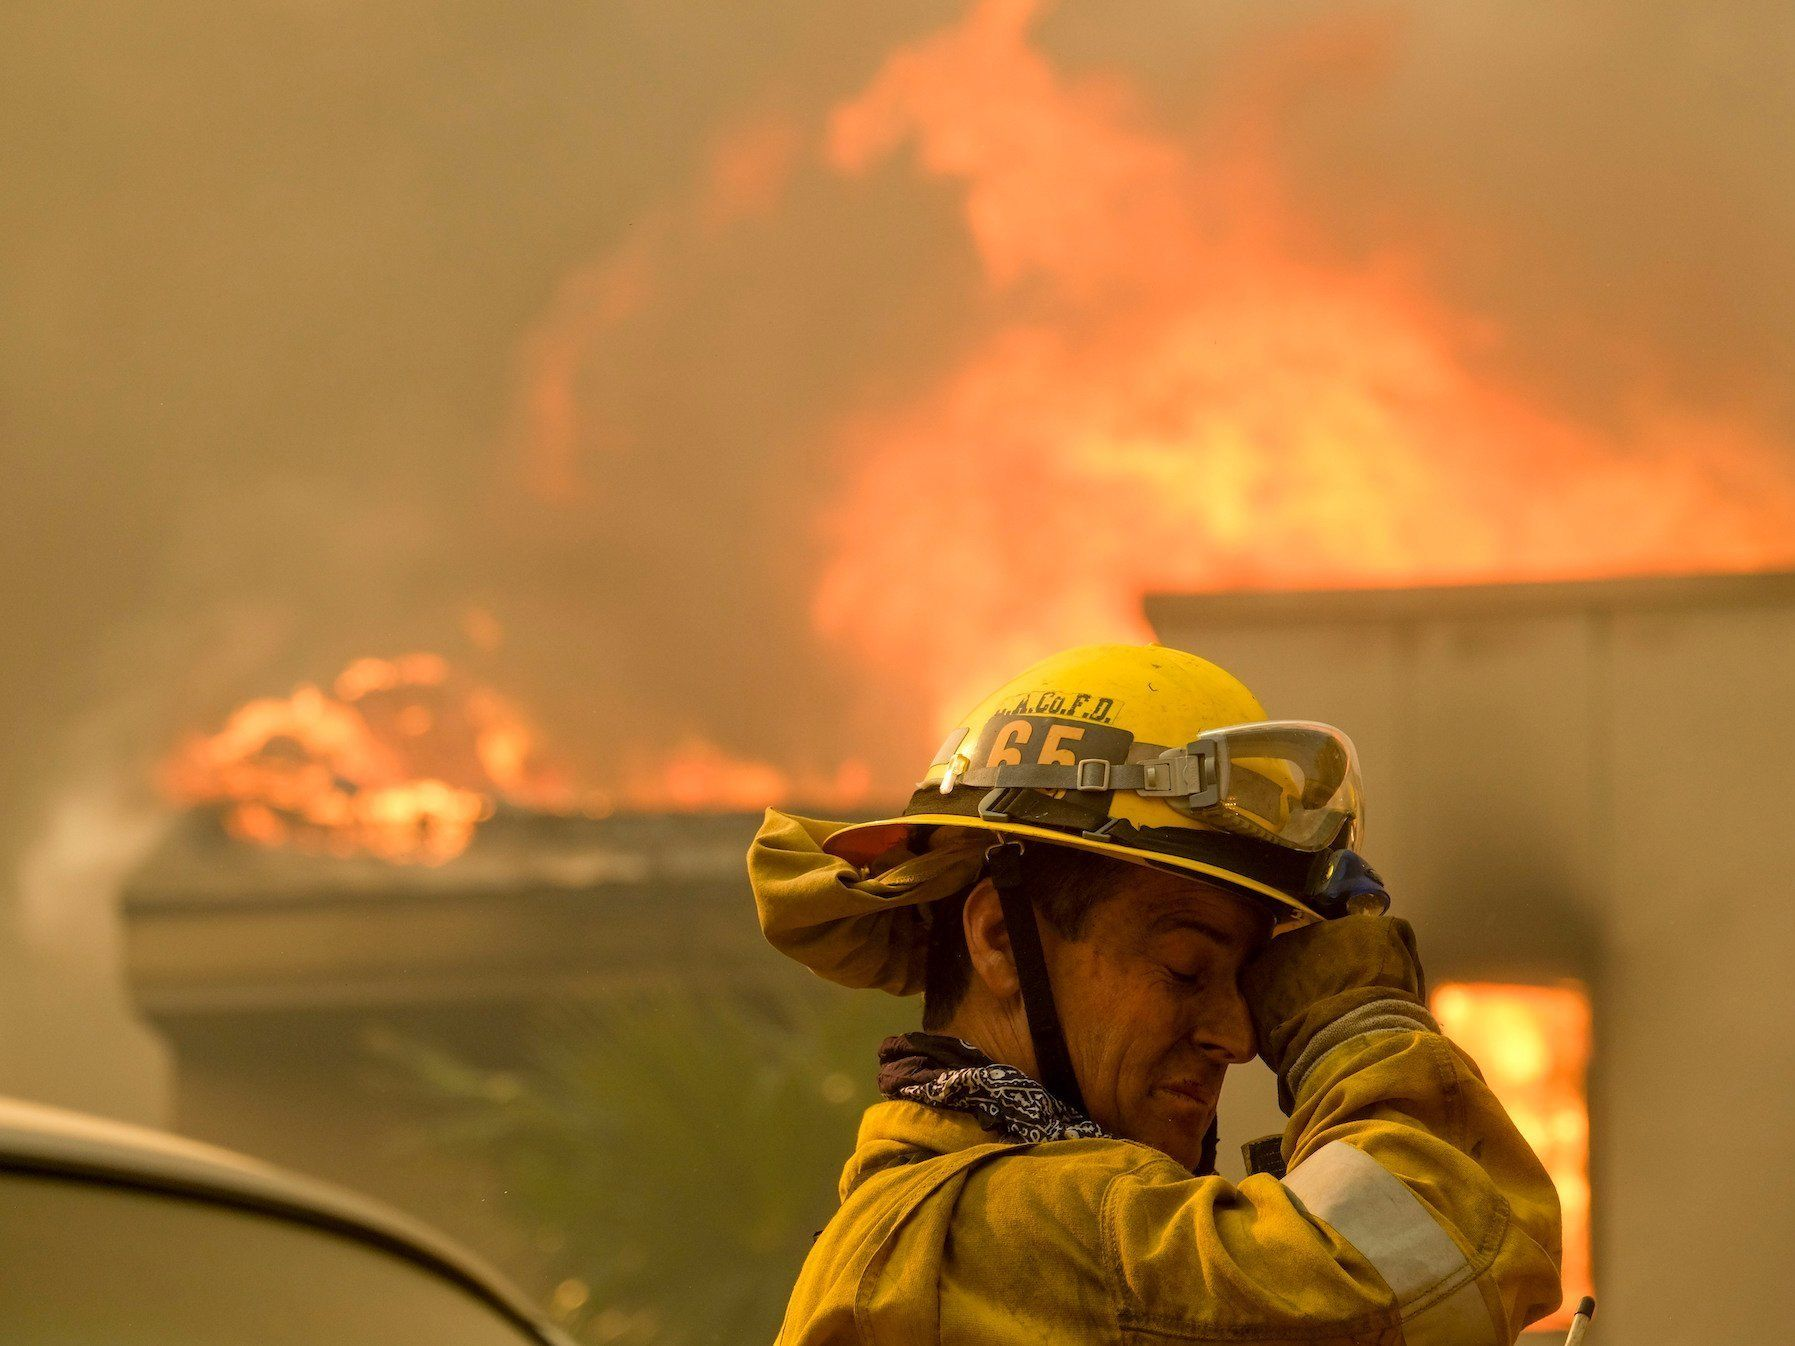 The death toll from California's fires has risen to 80 — and nearly 1,000 people are still missing